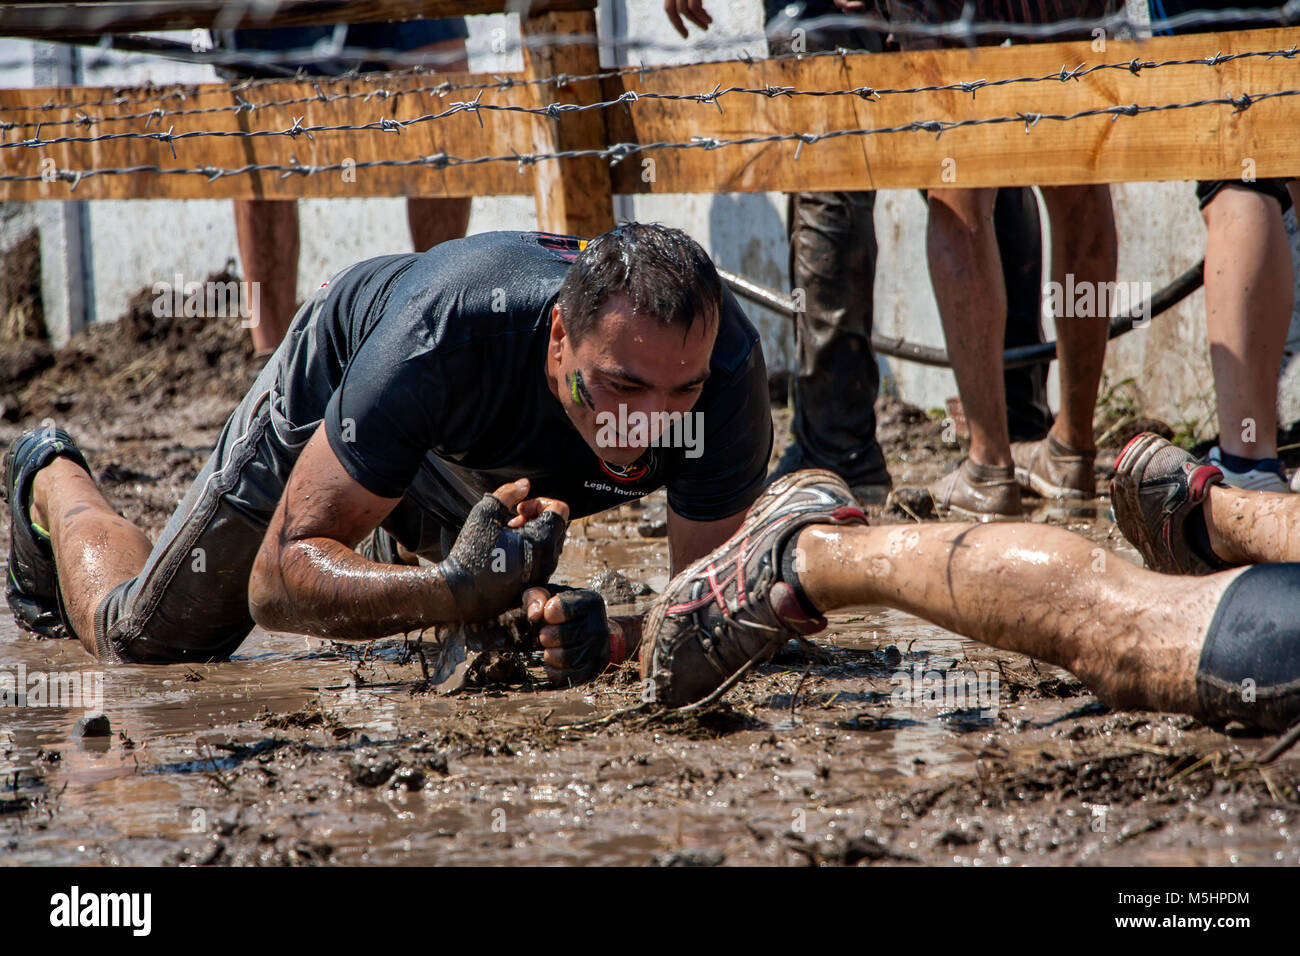 A man crawling under barbed wire during strength race Legion Run held  in Sofia, Bulgaria on 26 July 2014 - Stock Image